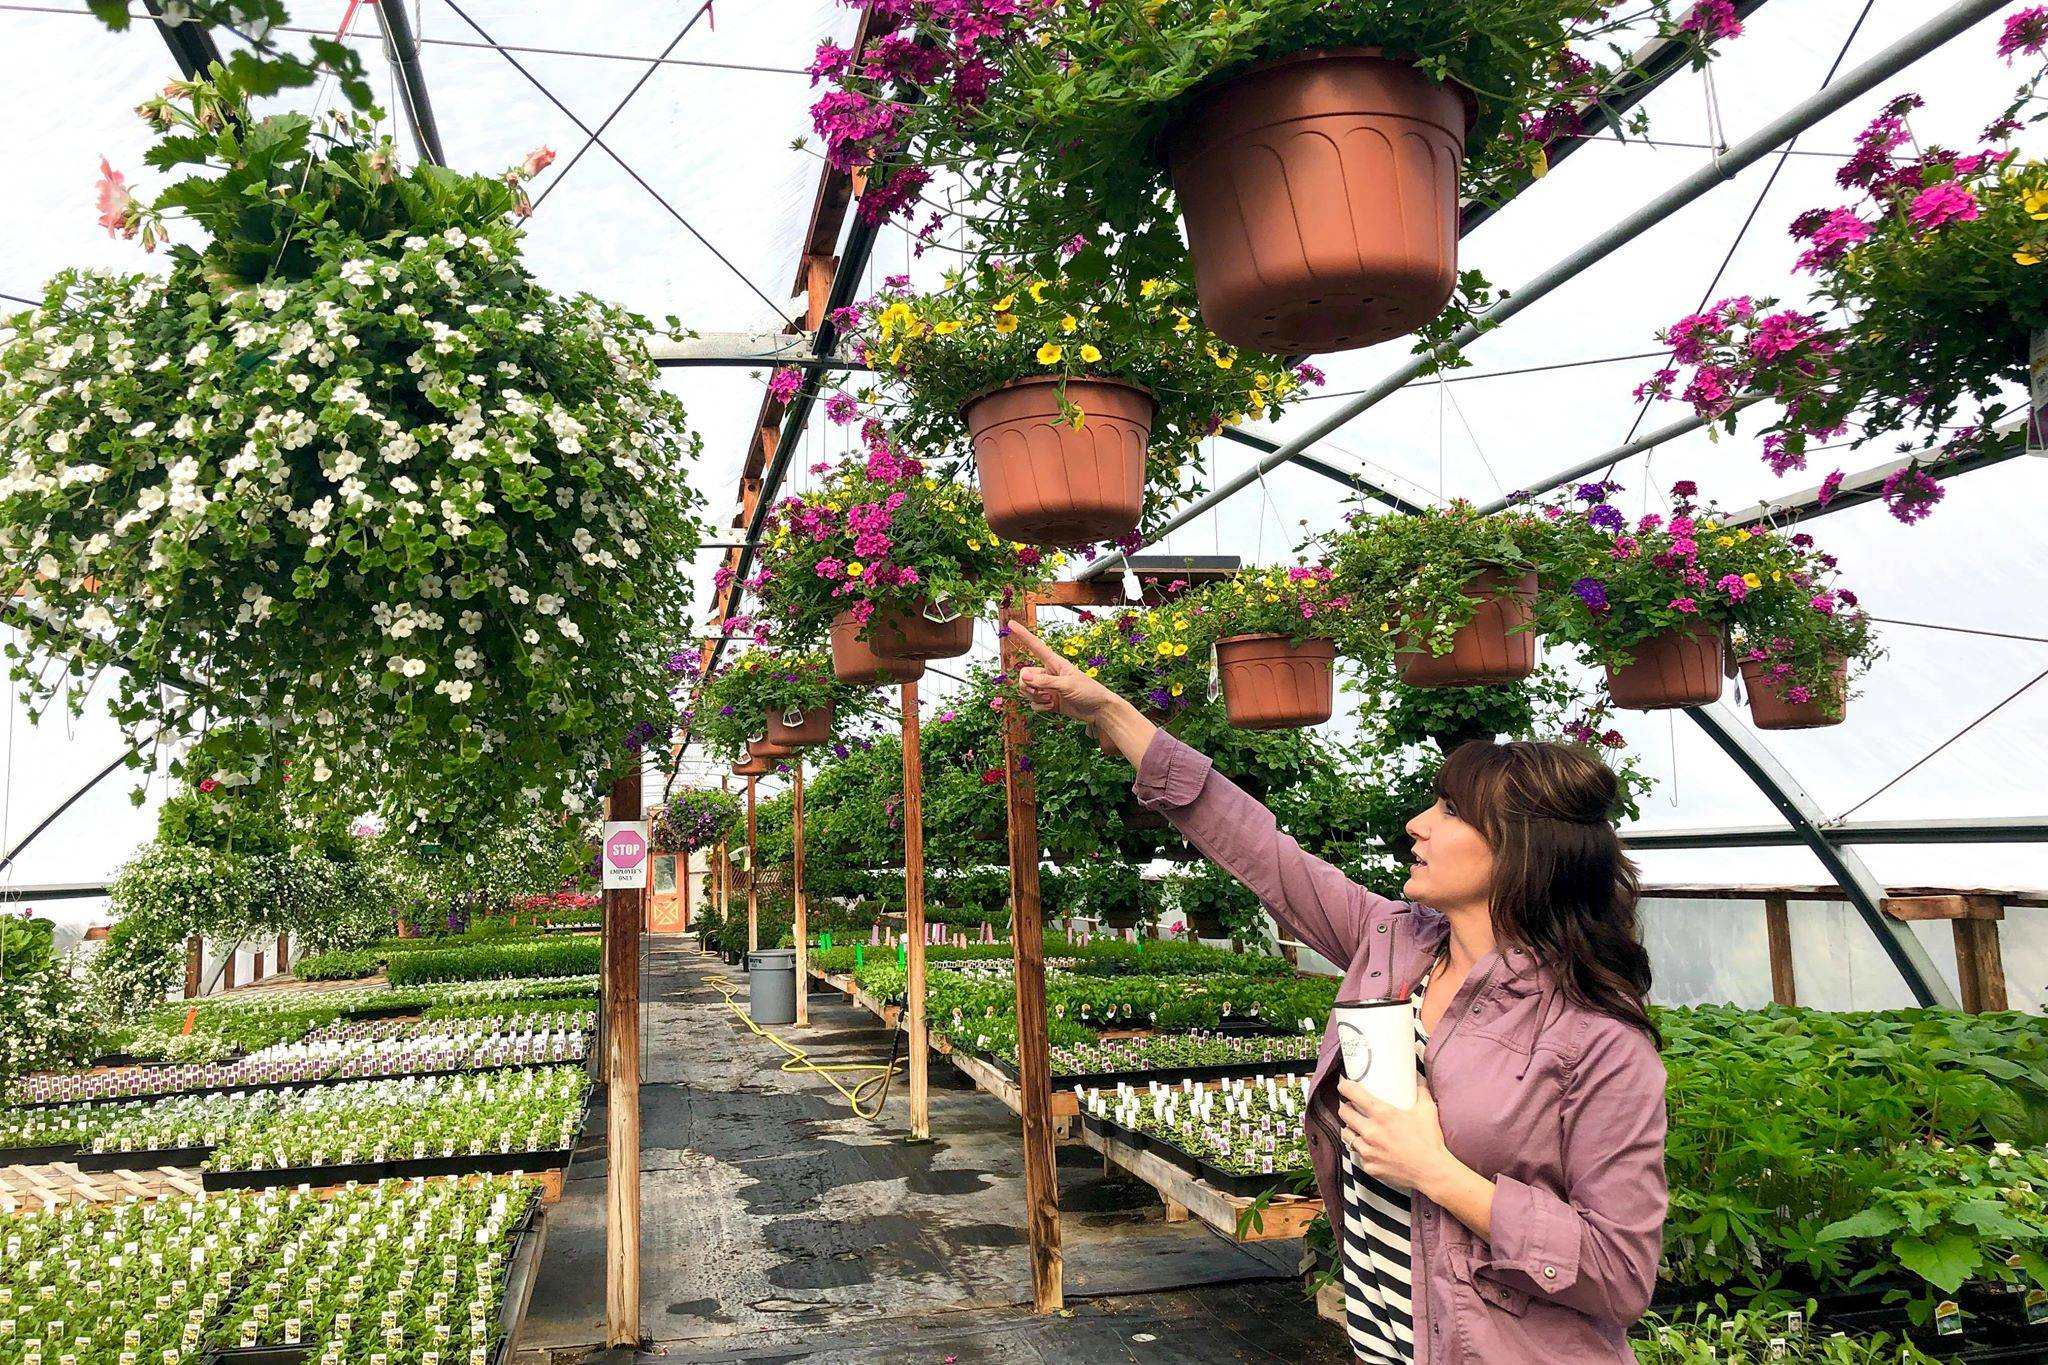 Jessica Henry points to one of the many flower baskets made at Trinity Greenhouse, which are some of the business's bestsellers, on Monday, June 3, 2019, near Kenai, Alaska. (Photo by Victoria Petersen/Peninsula Clarion)